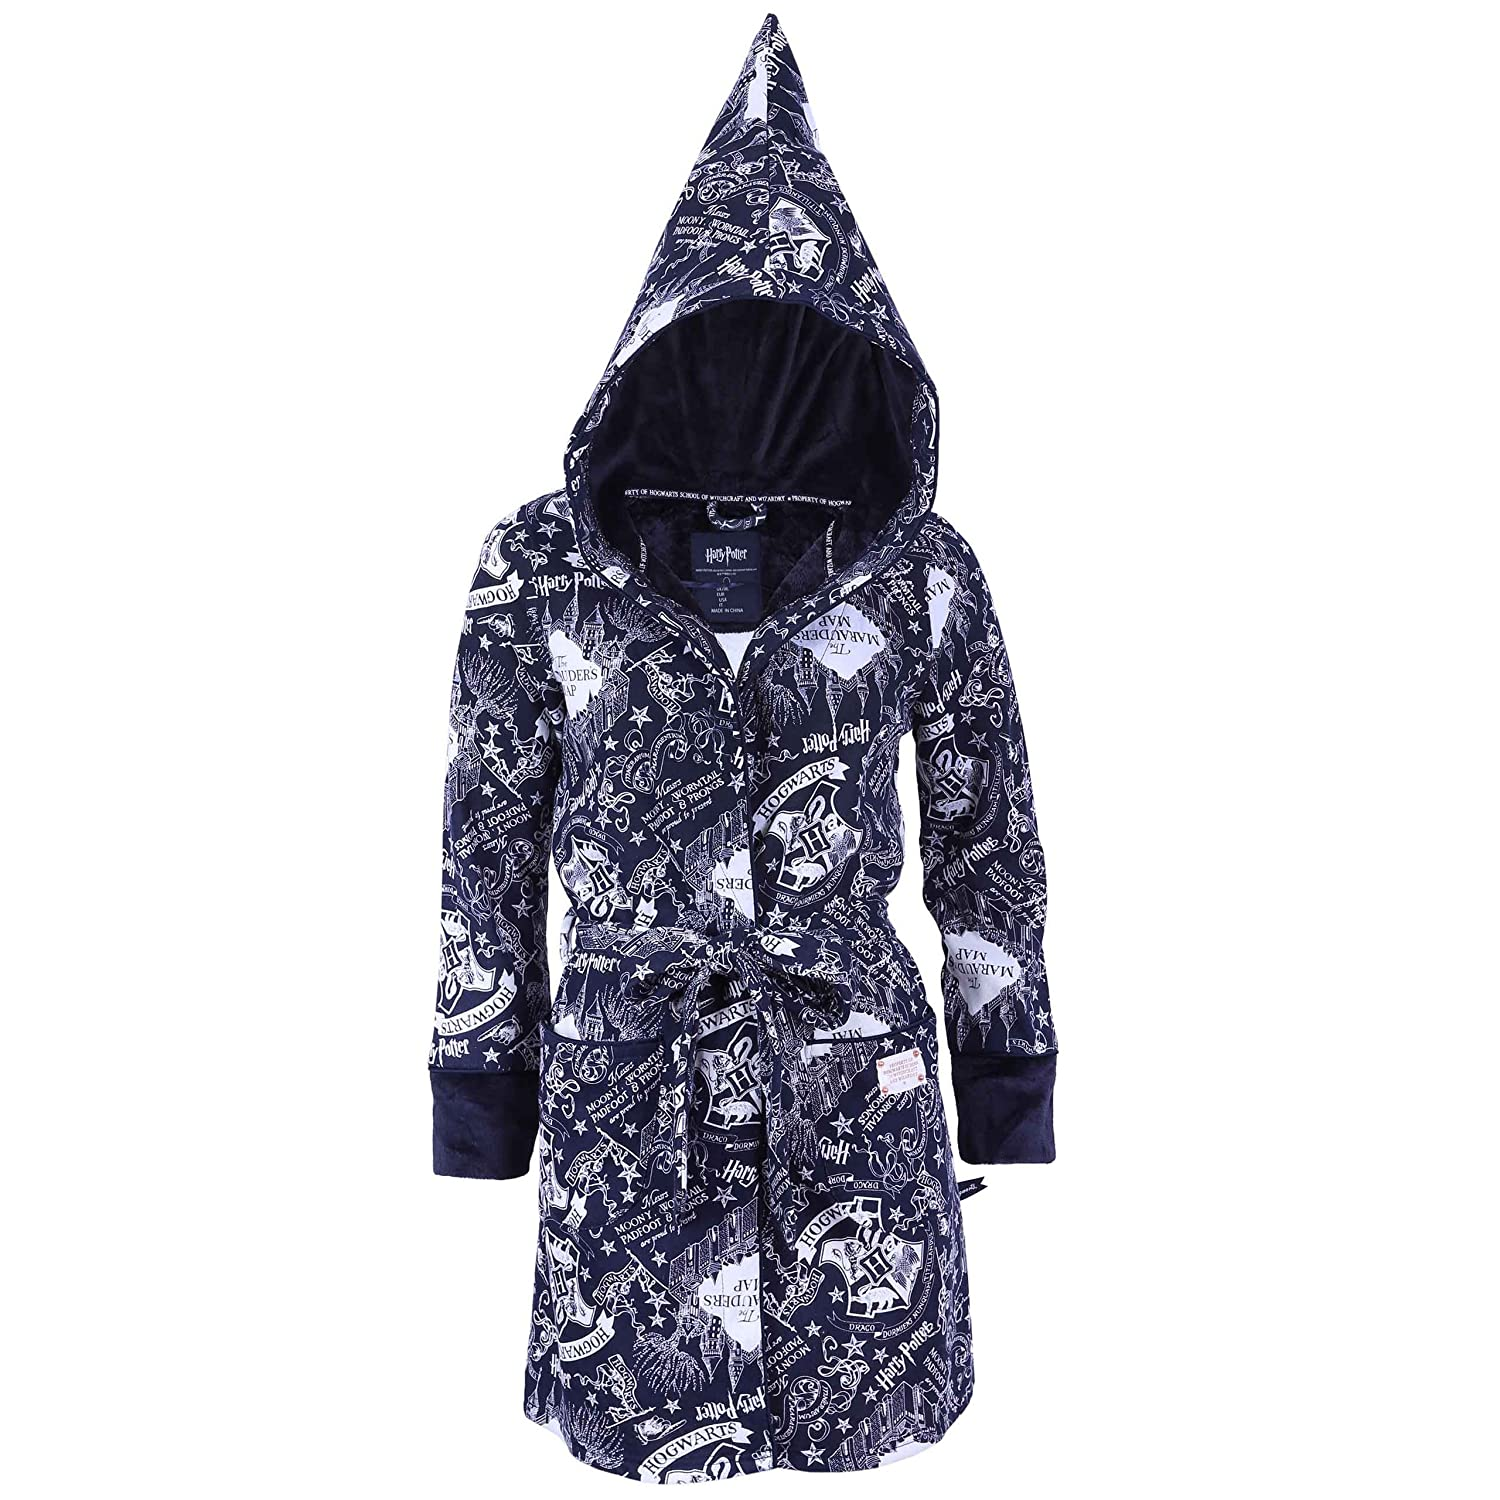 Ladies Navy Blue, The Marauder's MAP Hooded Dressing Gown Hogwarts Harry Potter Harry Potter - Hogwarts